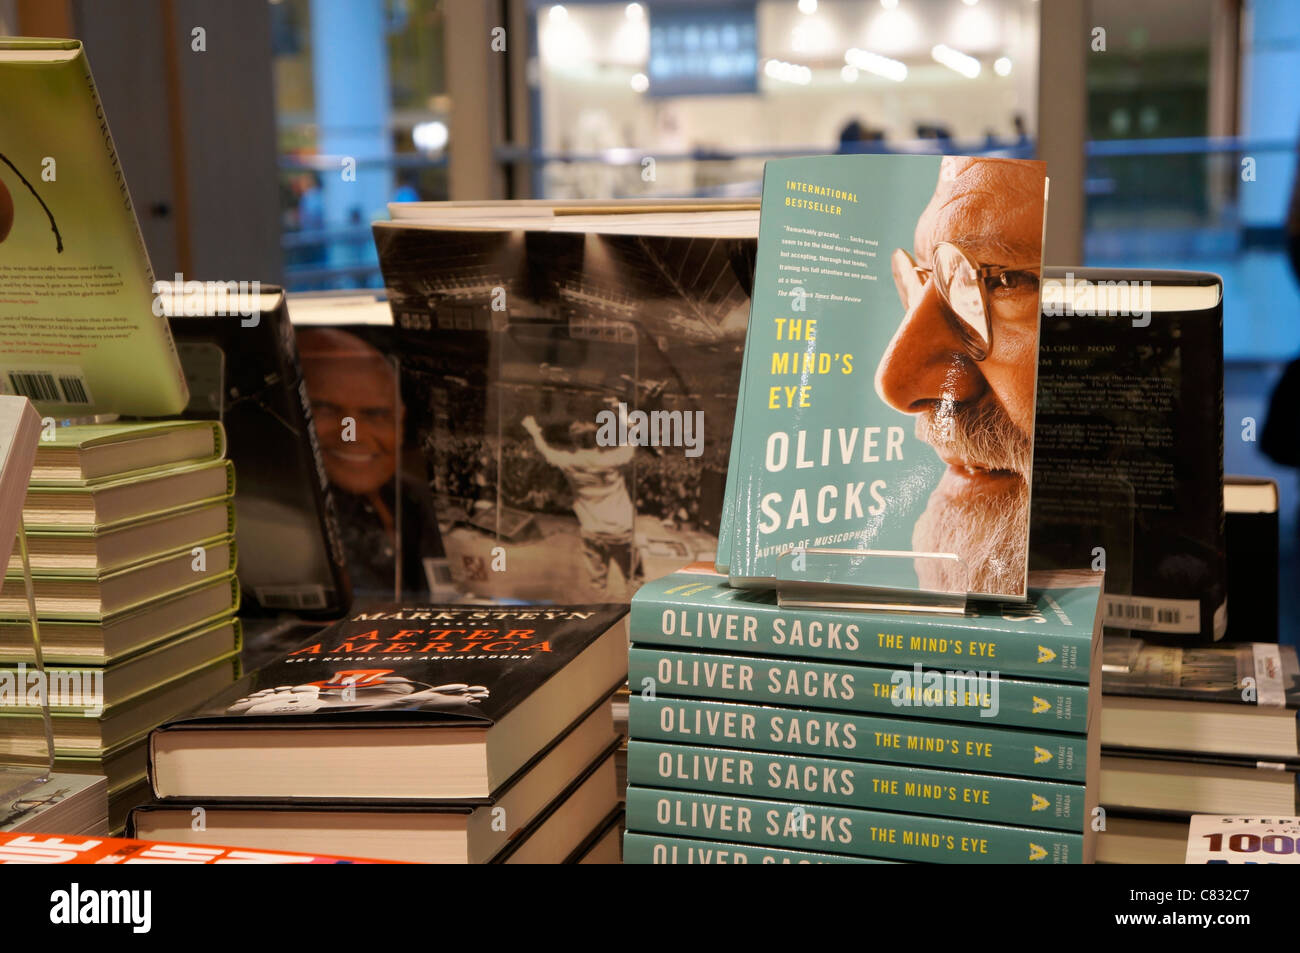 Books on table, on display at bookstore - Stock Image